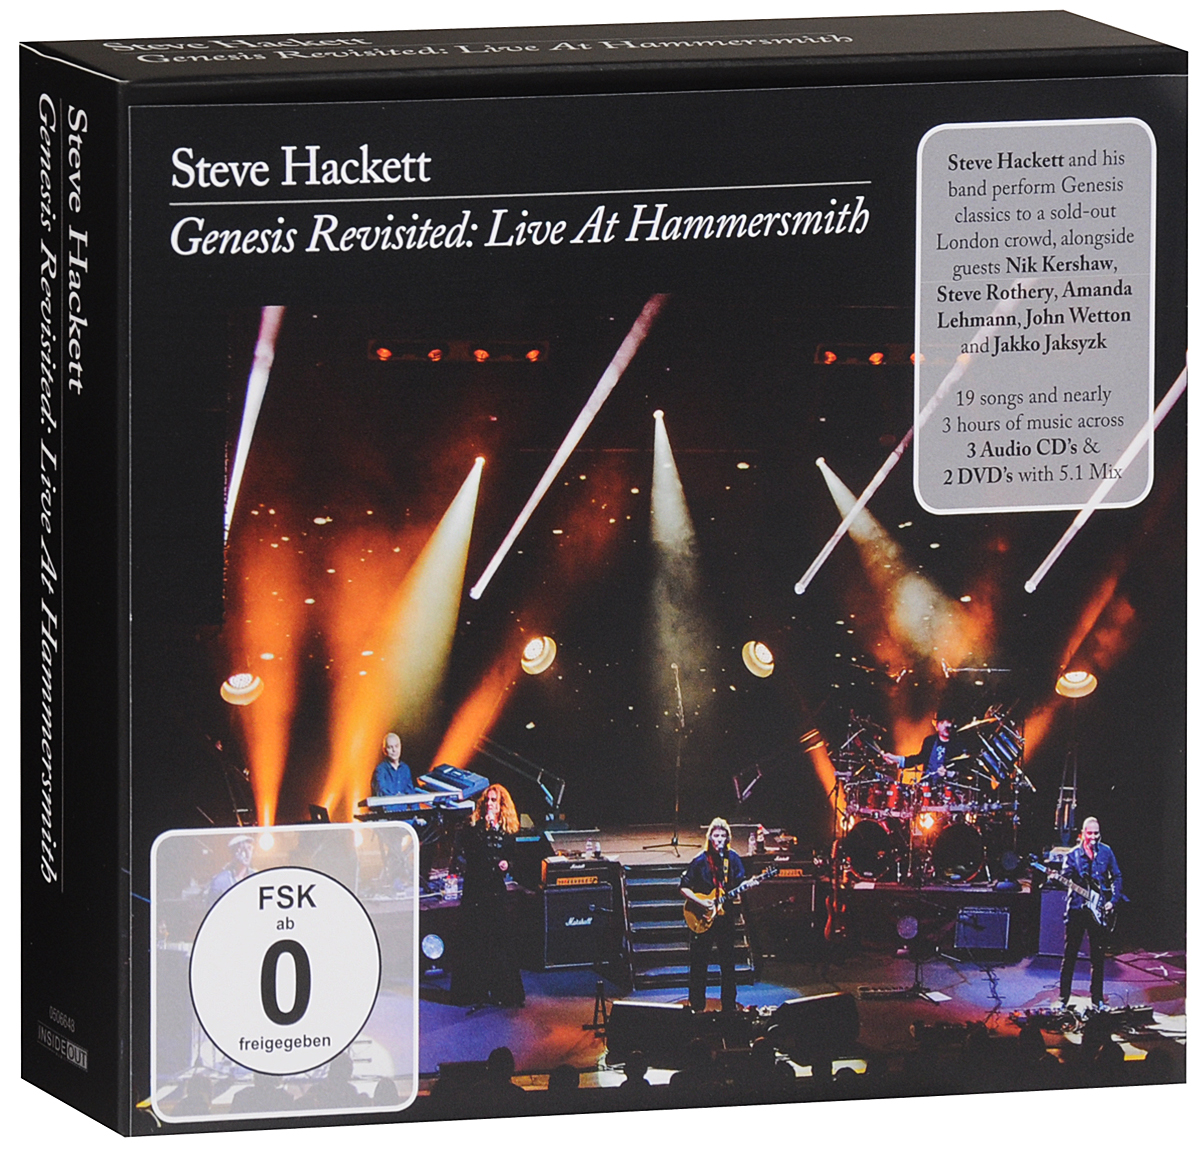 Стив Хэкетт Steve Hackett. Genesis Revisited. Live At Hammersmith (3 CD + 2 DVD) crossroads revisited cd